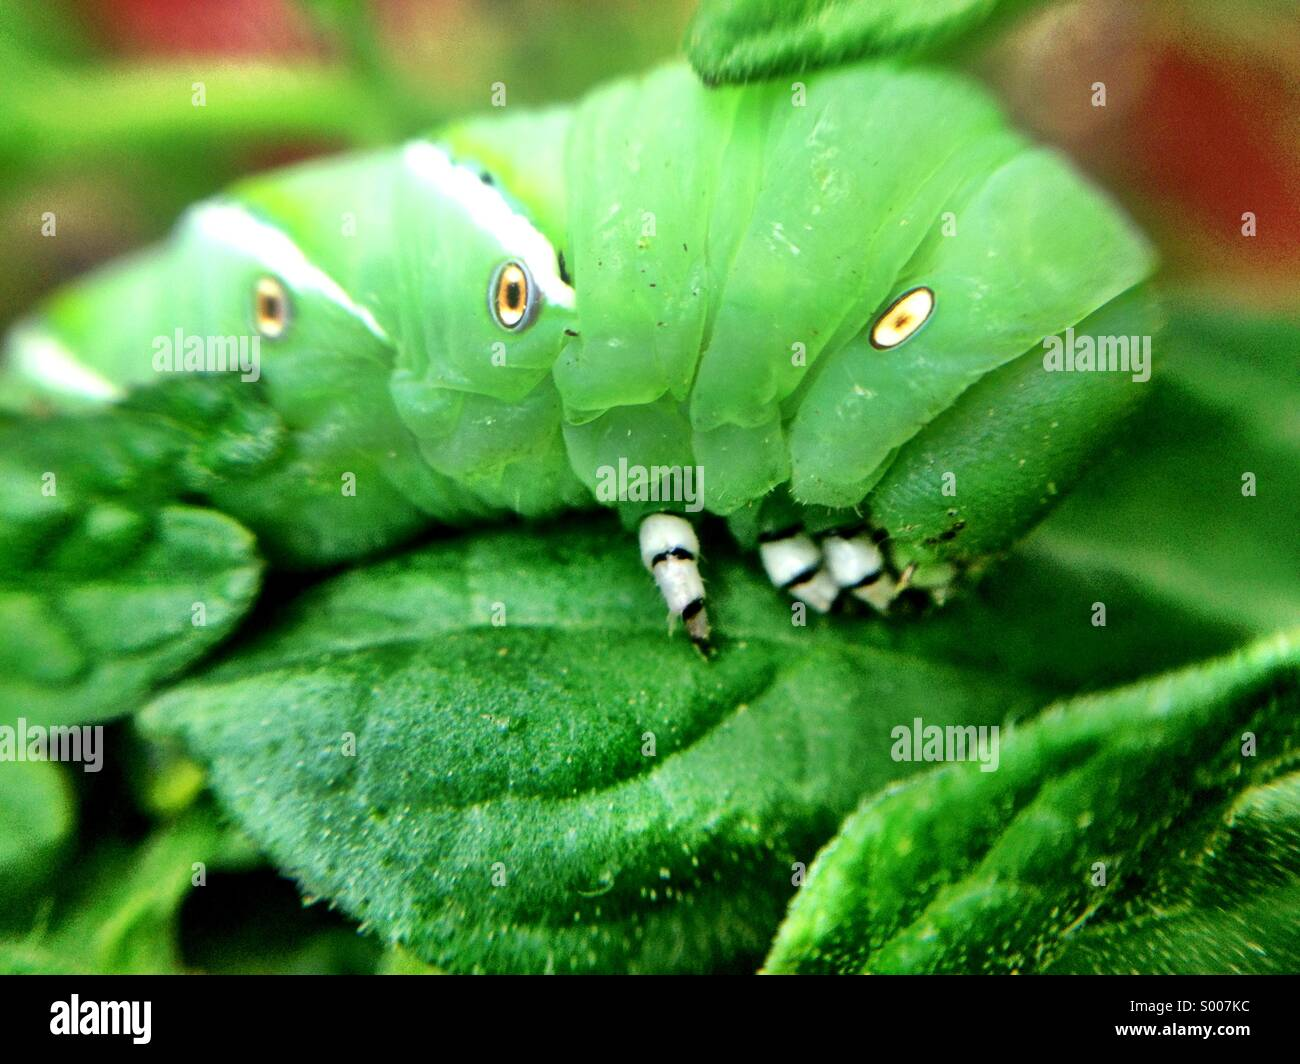 Closeup of tomato hornworm - Stock Image